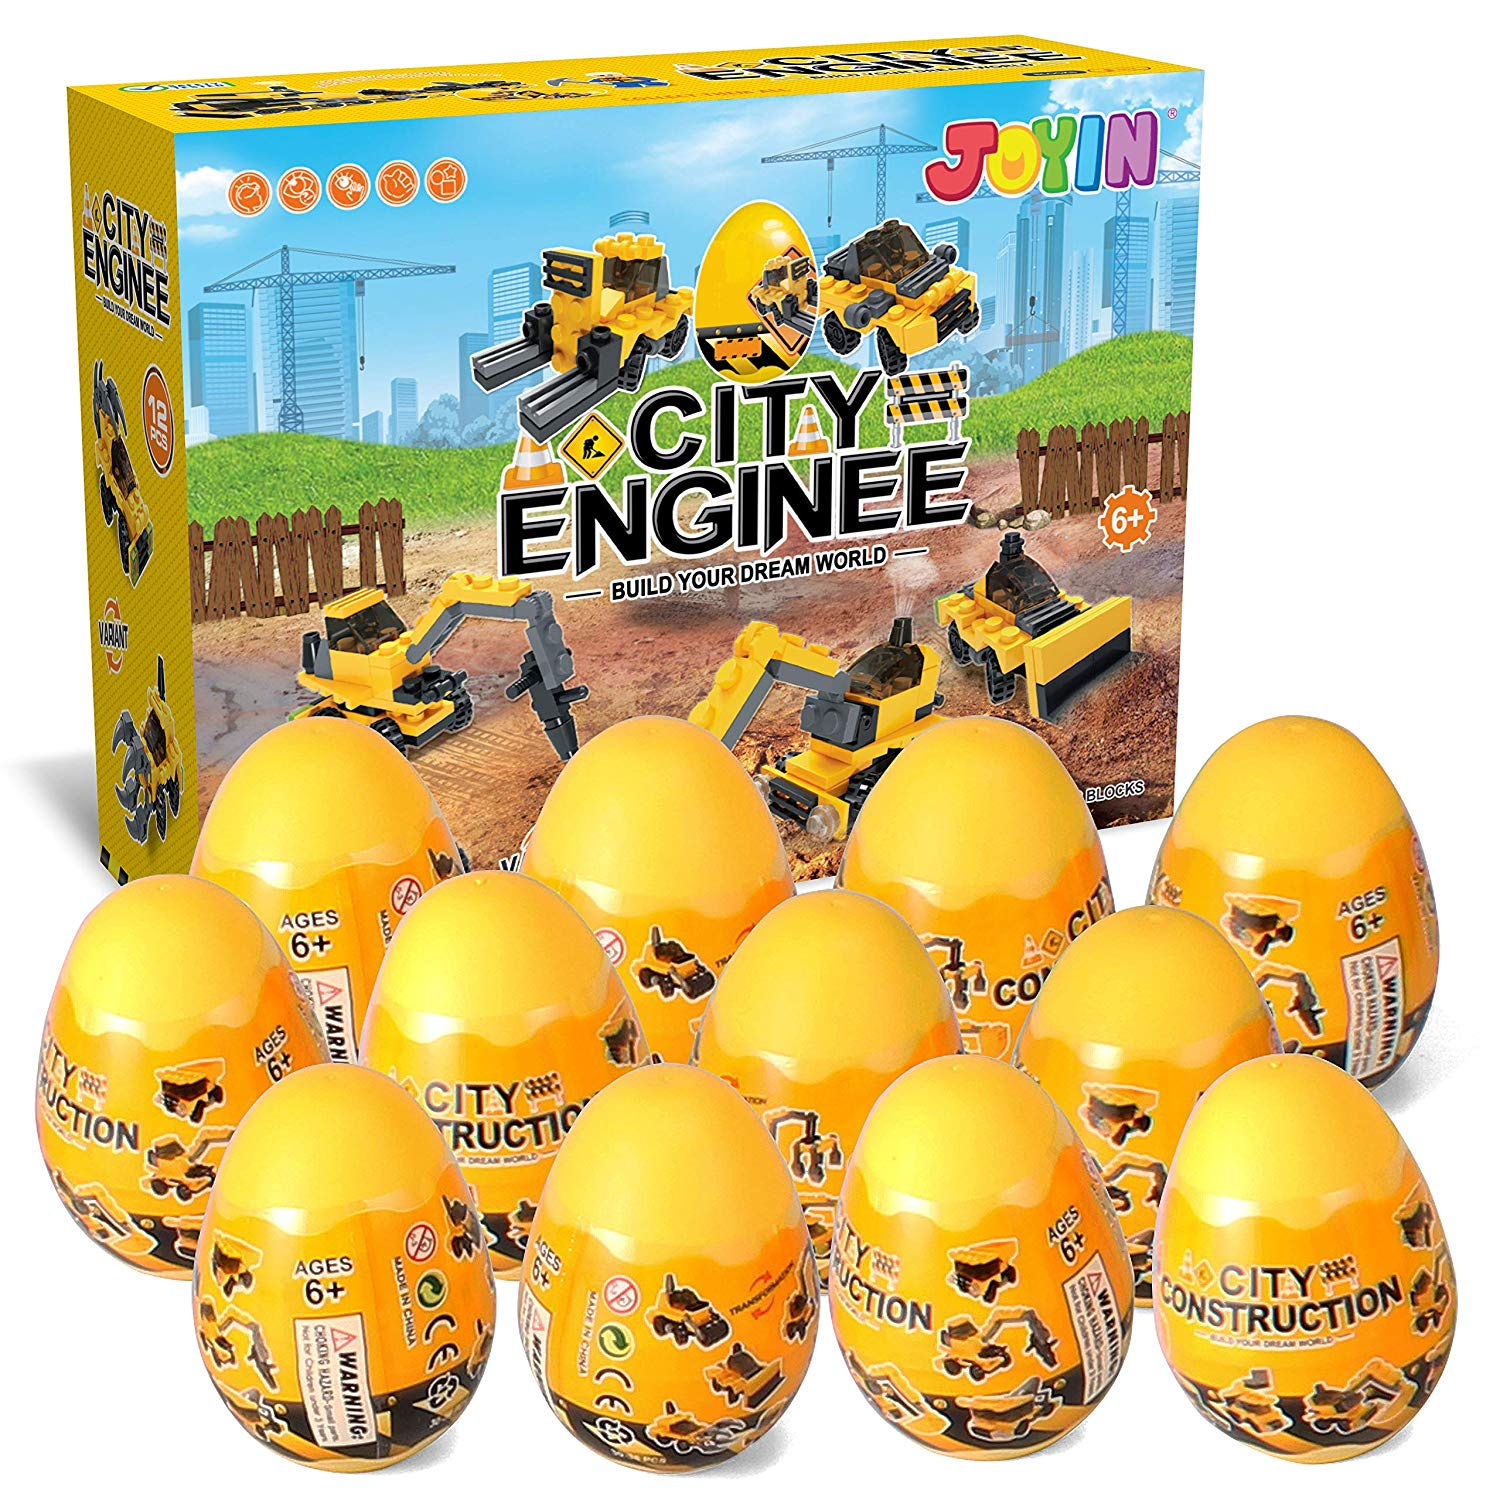 Prefilled Easter Eggs with Construction Vehicles